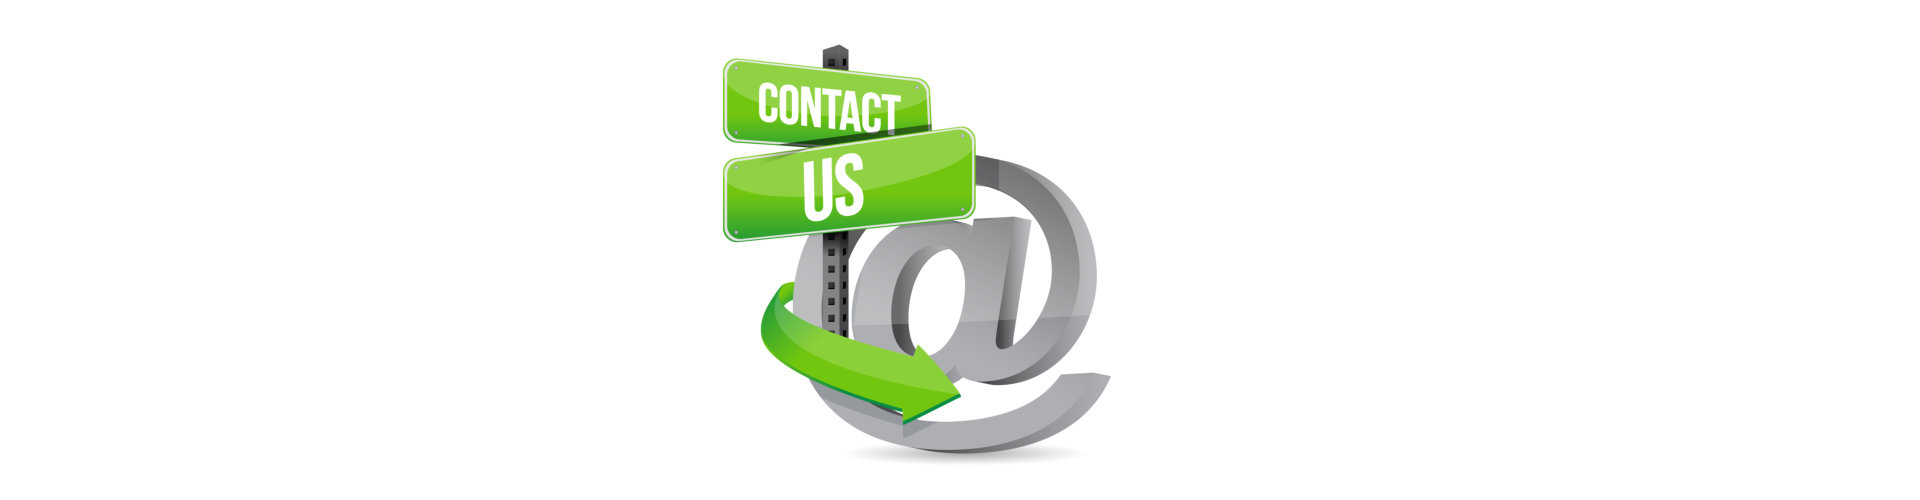 e-mail contact us at sign illustration design over white